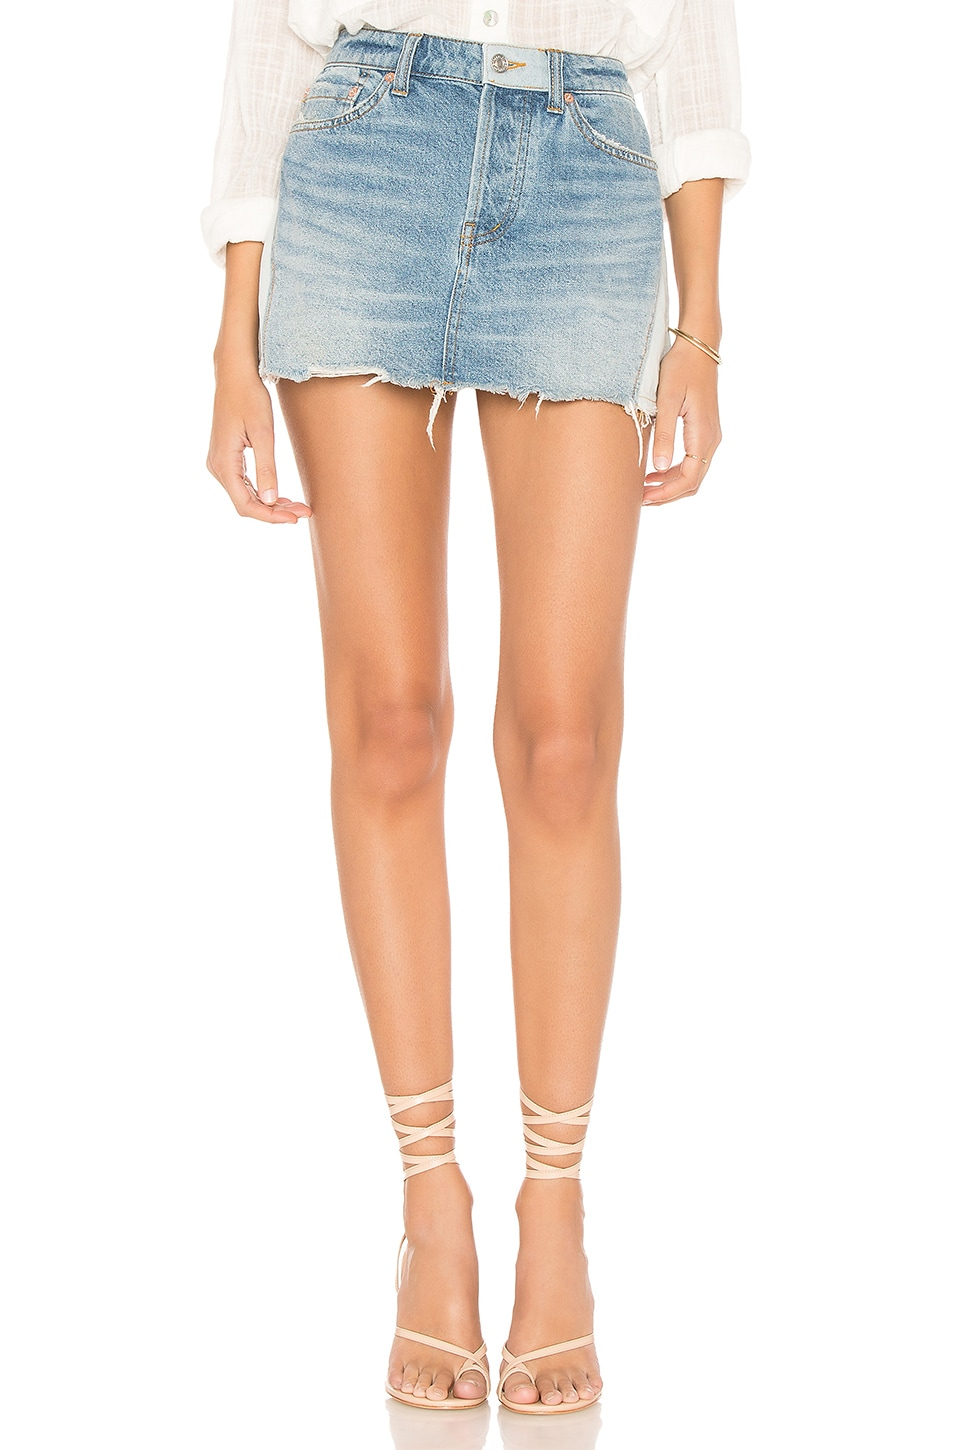 Free People Patched Denim Mini Skirt in Blue